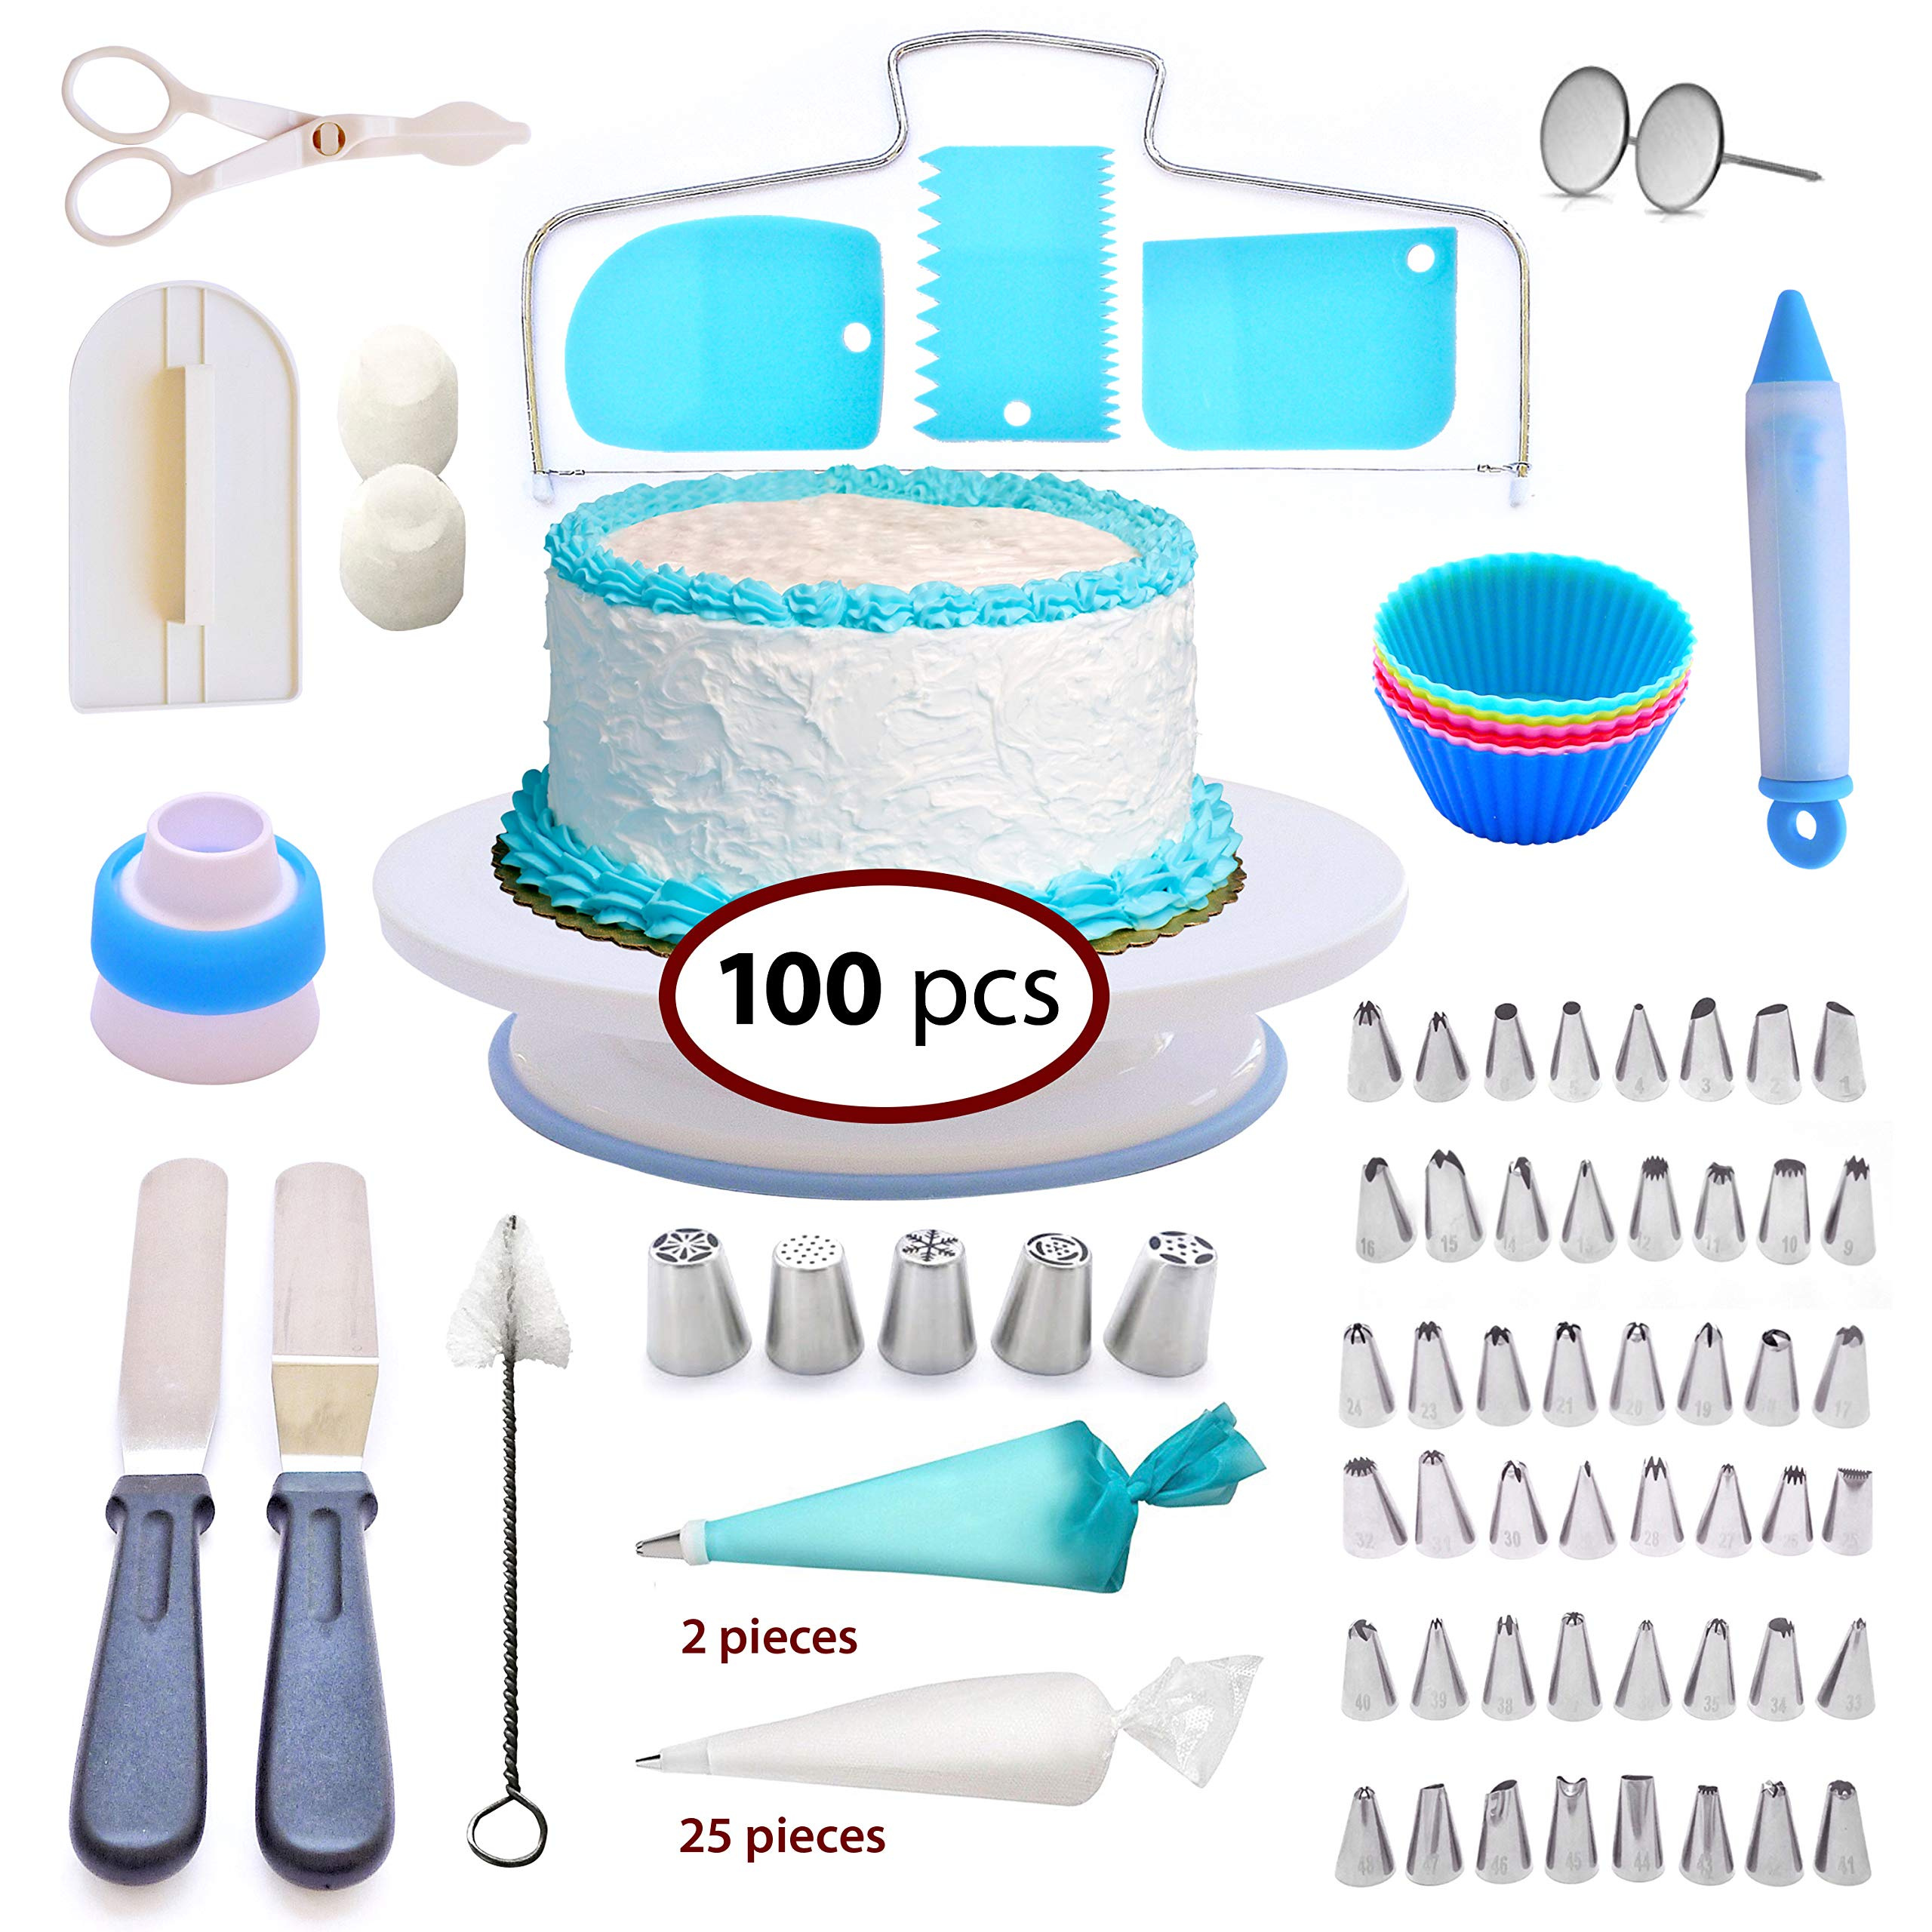 Cake Decorating Supplies Set-100 pcs Cupcake Decorating kit Baking Supplies - Nonslip Rotating Turntable-48 Numbered Icing Tips-Pastry Bags-Icing Tools-Russian Piping Noozels,Frosting, for every age